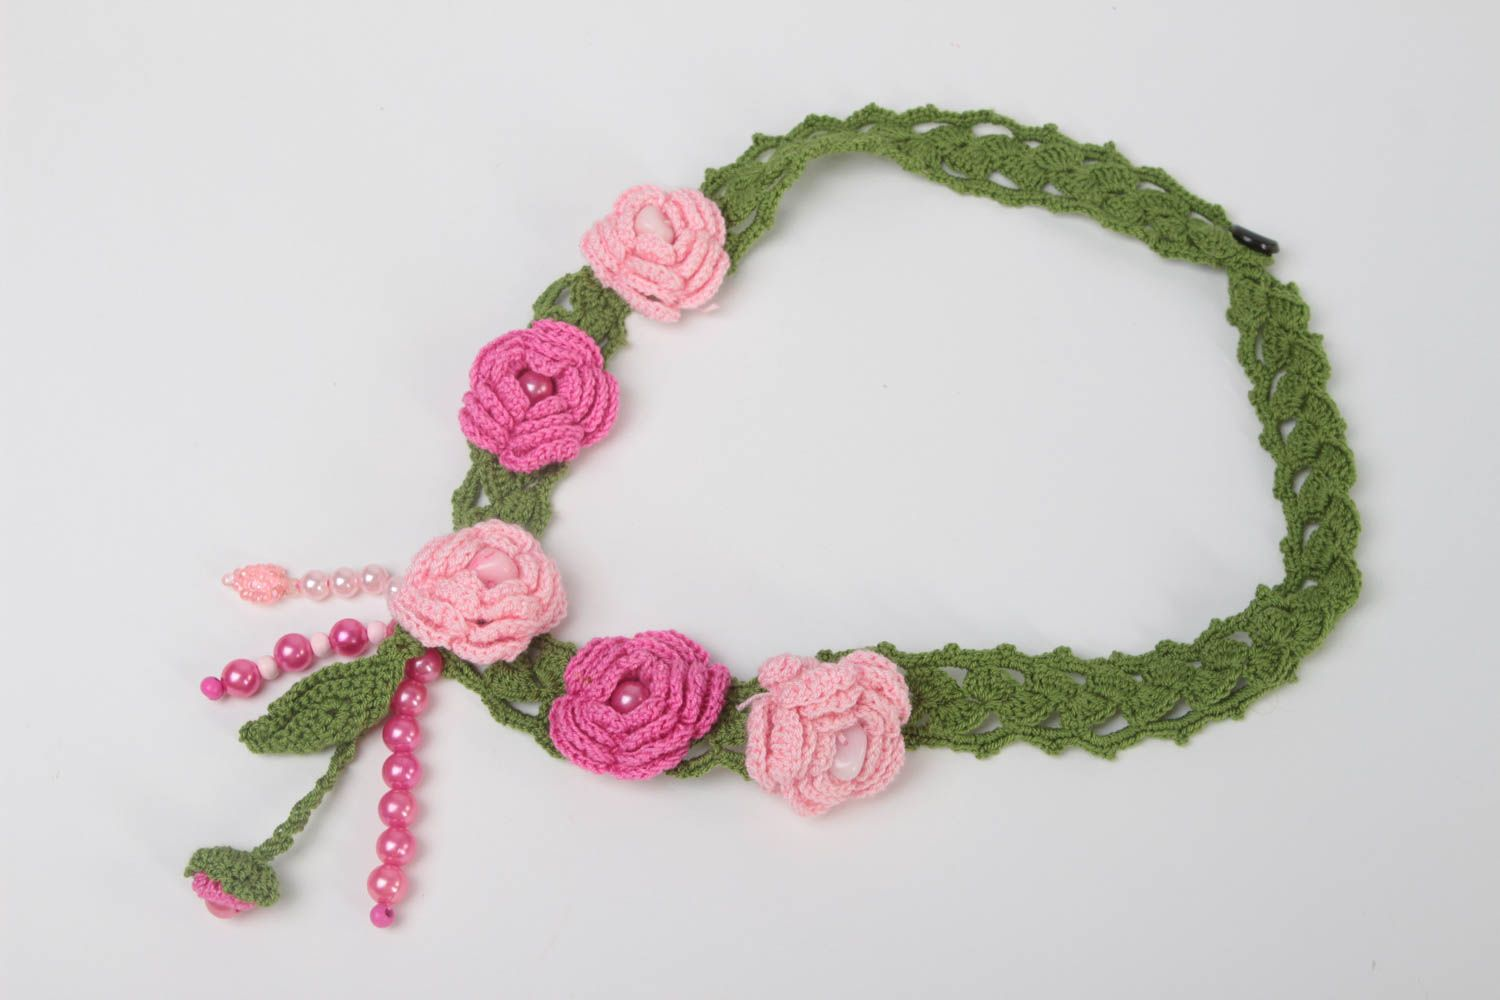 Handmade textile necklace crocheted flower necklace stylish accessory gift photo 2